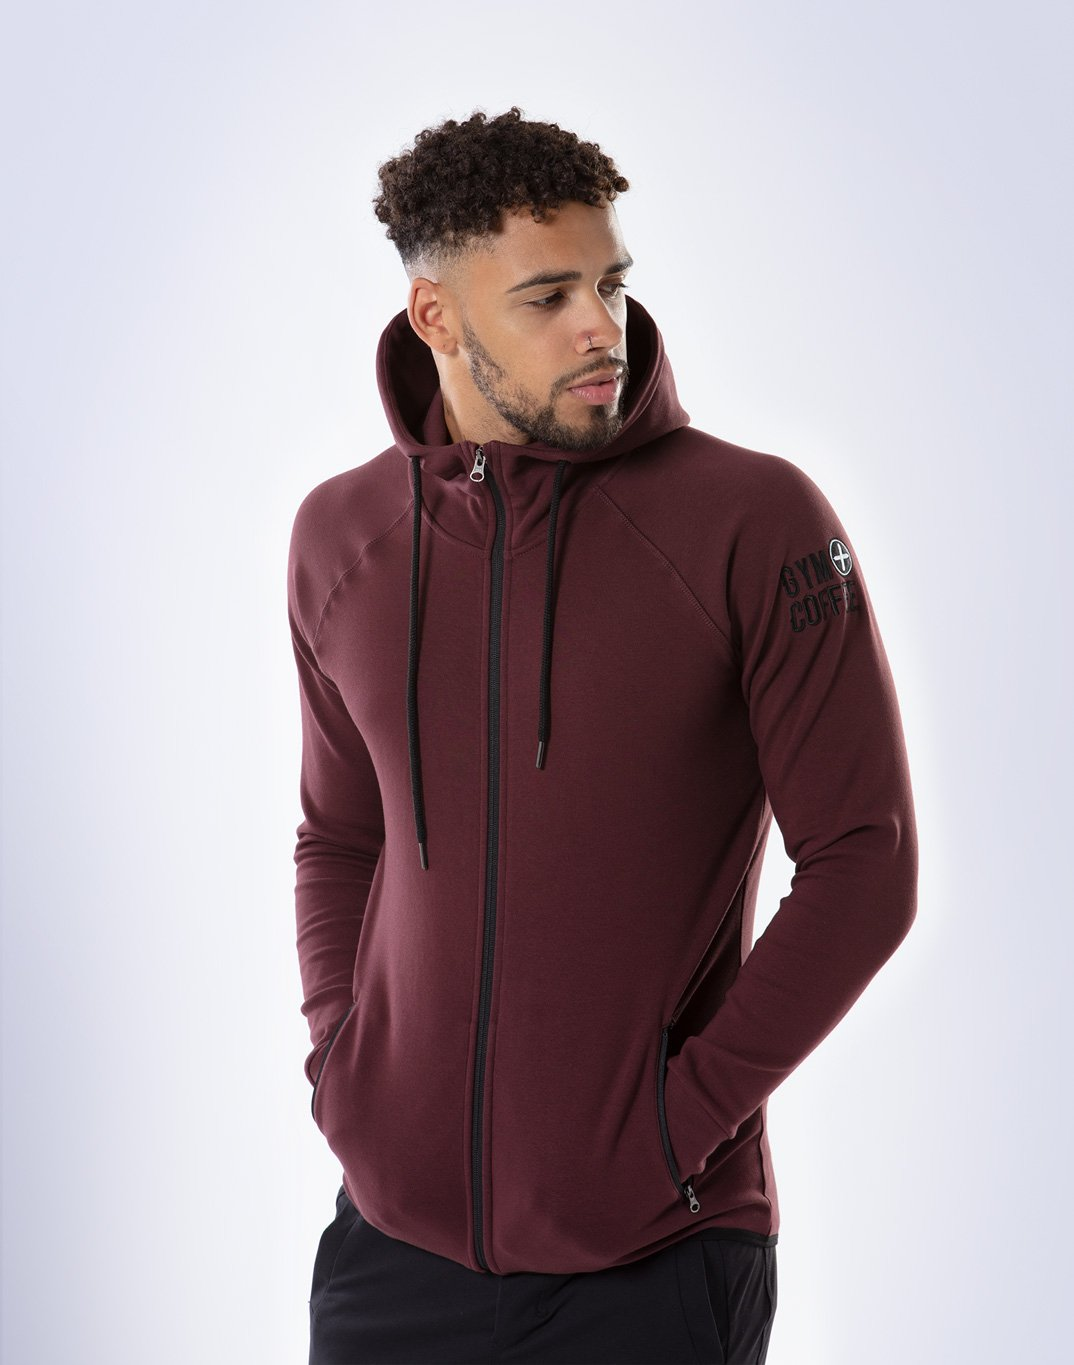 Gym Plus Coffee Hoodie Men's Chill Hoodie in Grape Designed in Ireland